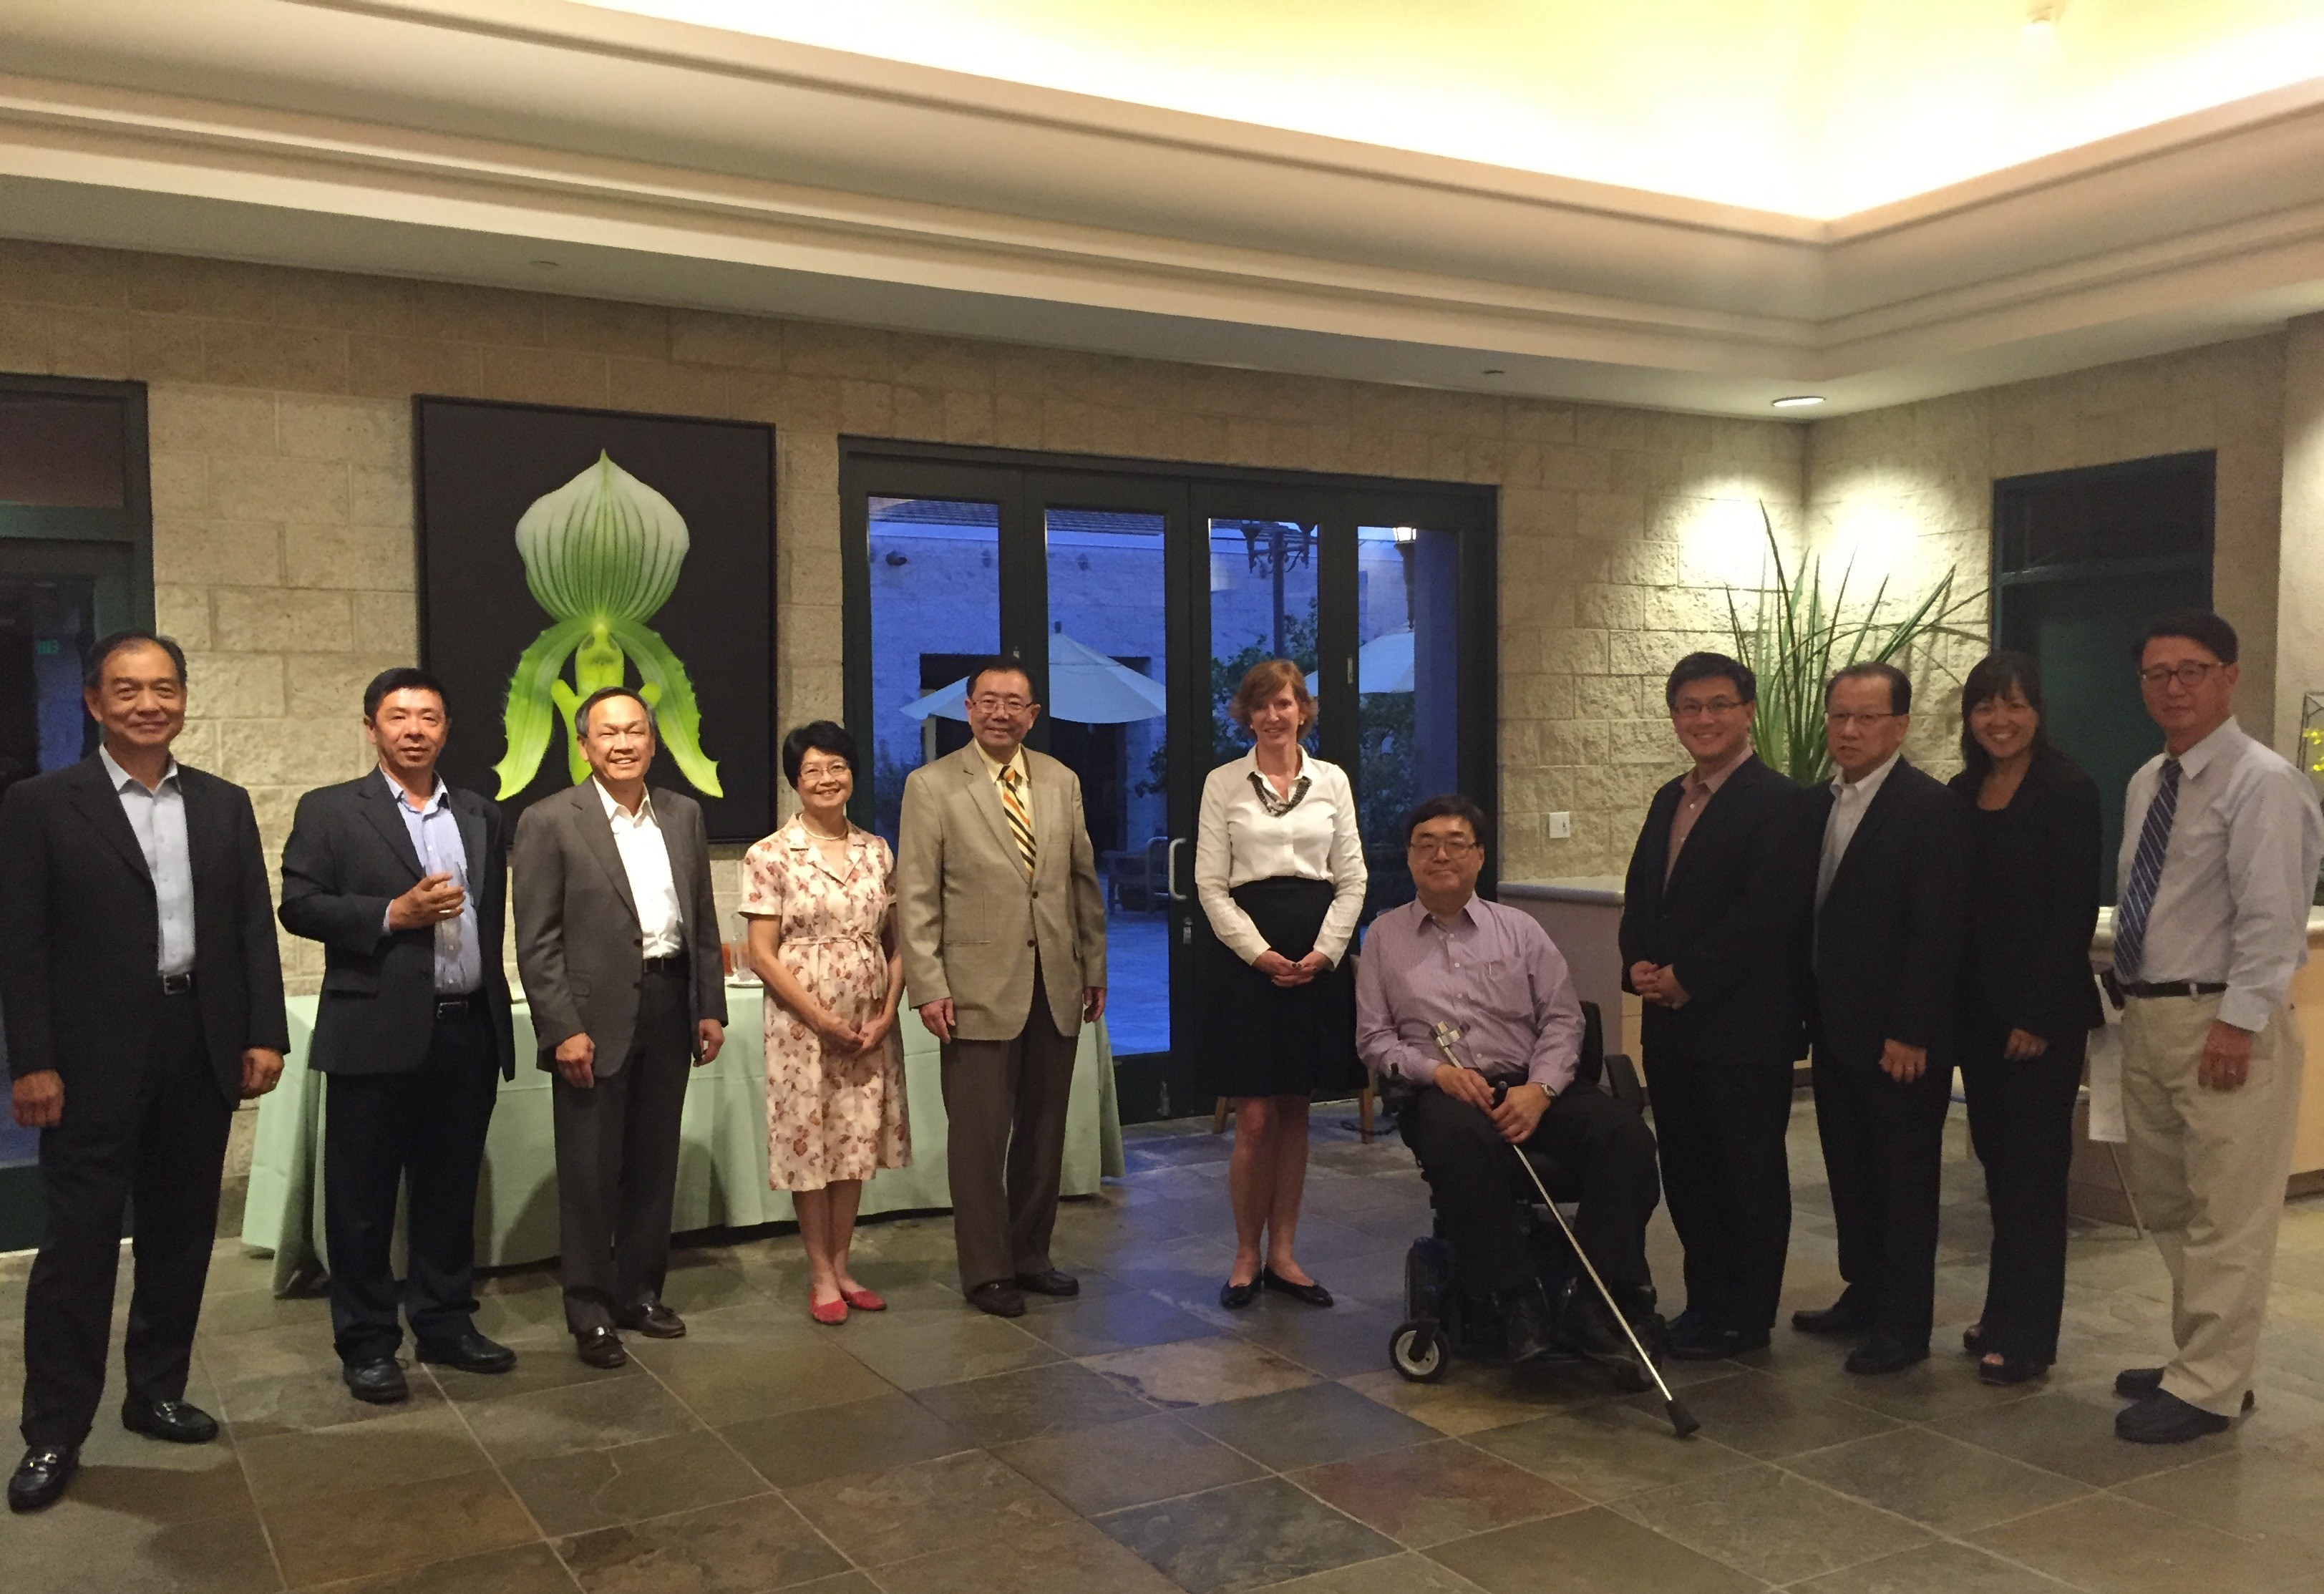 c blog page of committee of  event committee of 100 members convene in southern california 21 2015